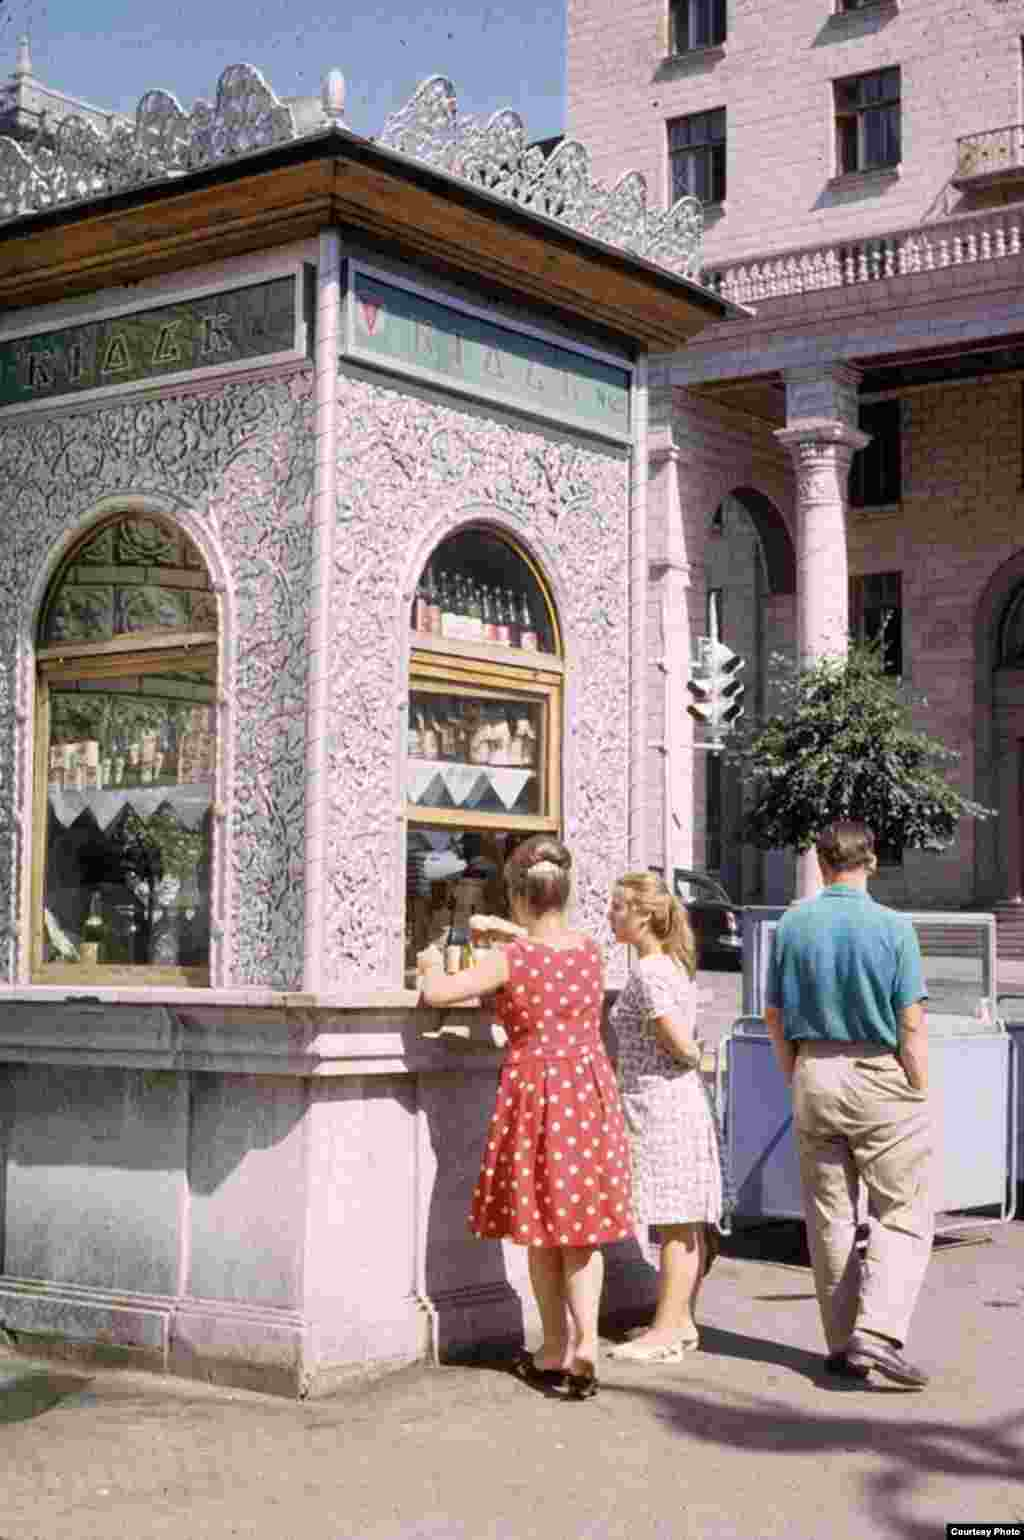 Kiosk No. 125 in Kyiv used to sell beverages and also alcoholic drinks and cigarettes. The kiosk is still there but looks rather different today.